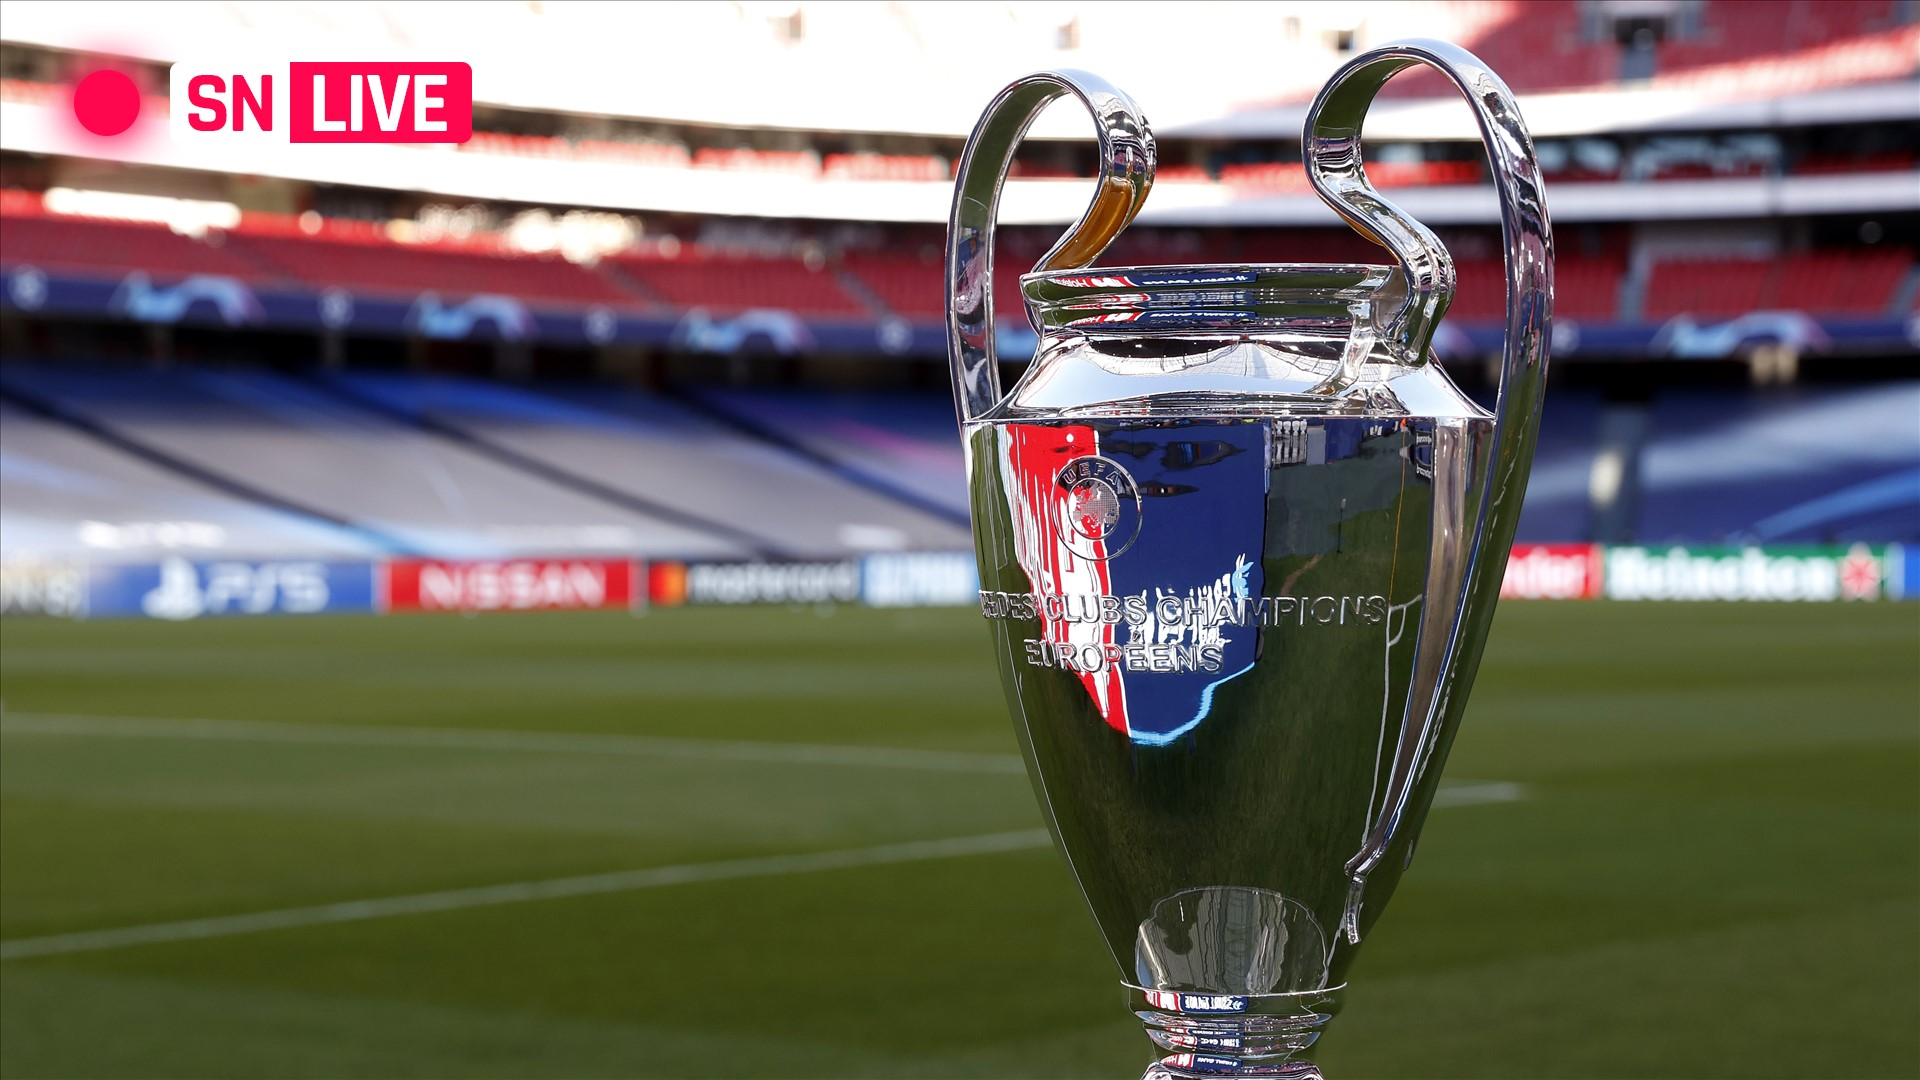 Psg Vs Bayern Live Score Updates Highlights From The 2020 Uefa Champions League Final Report Door